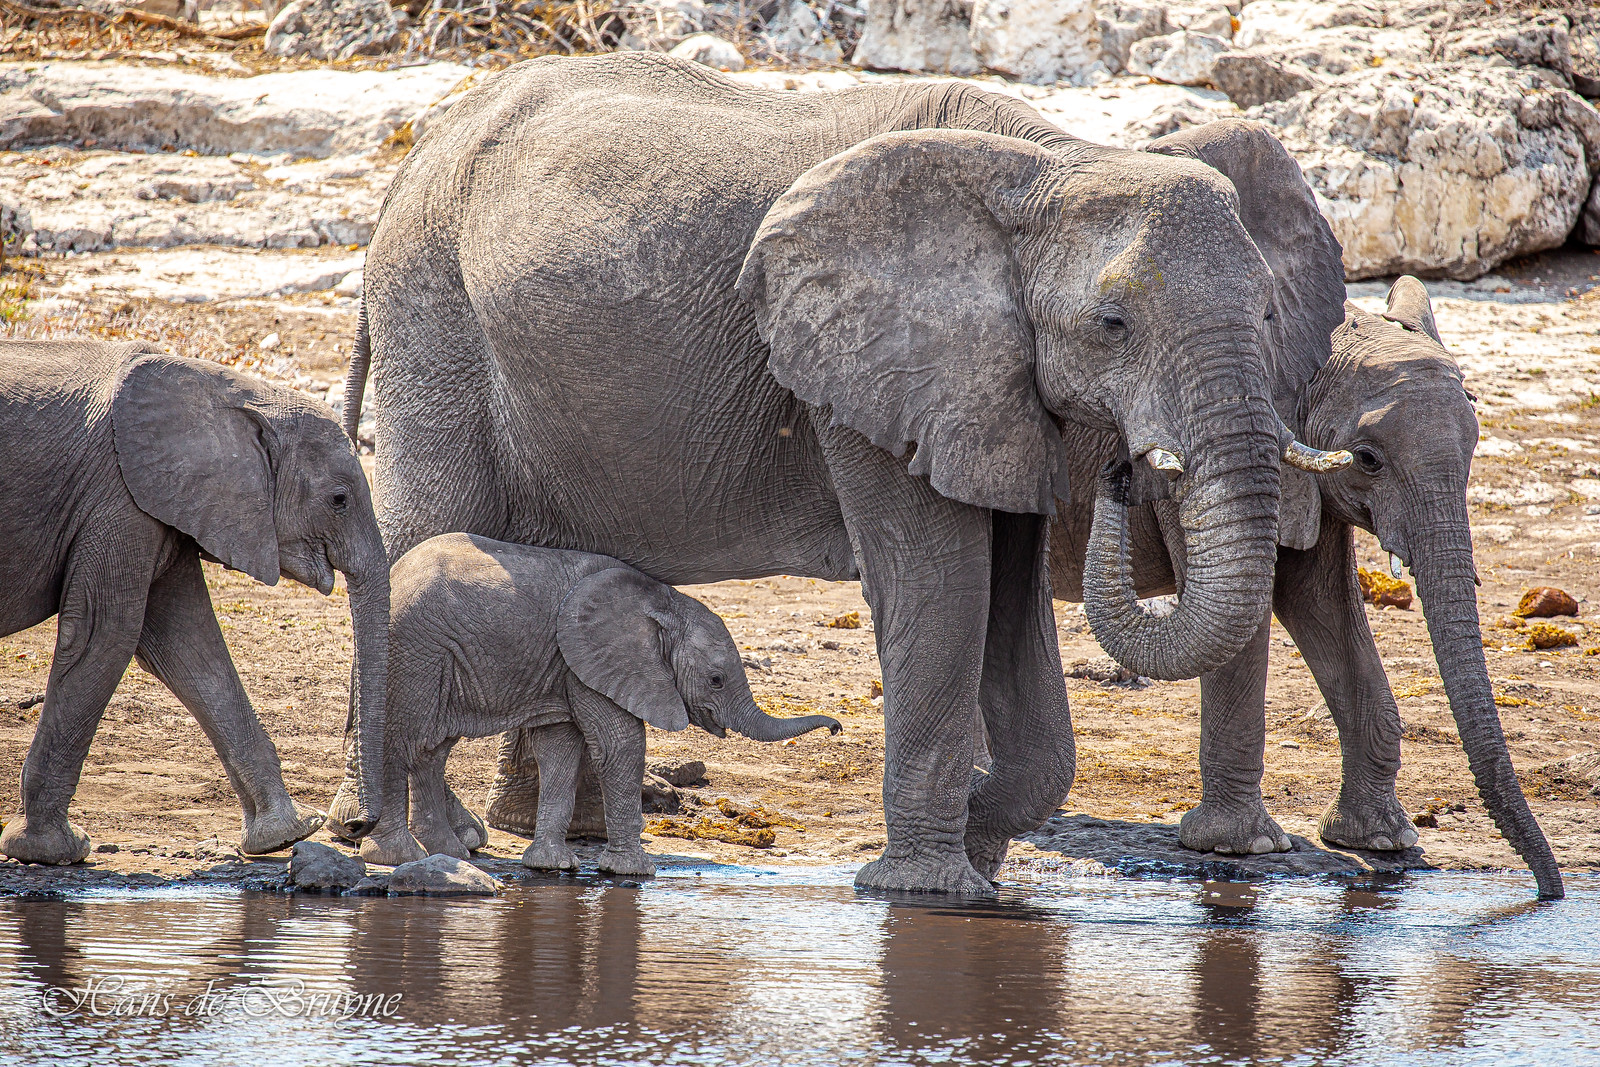 Elephant family by the pool